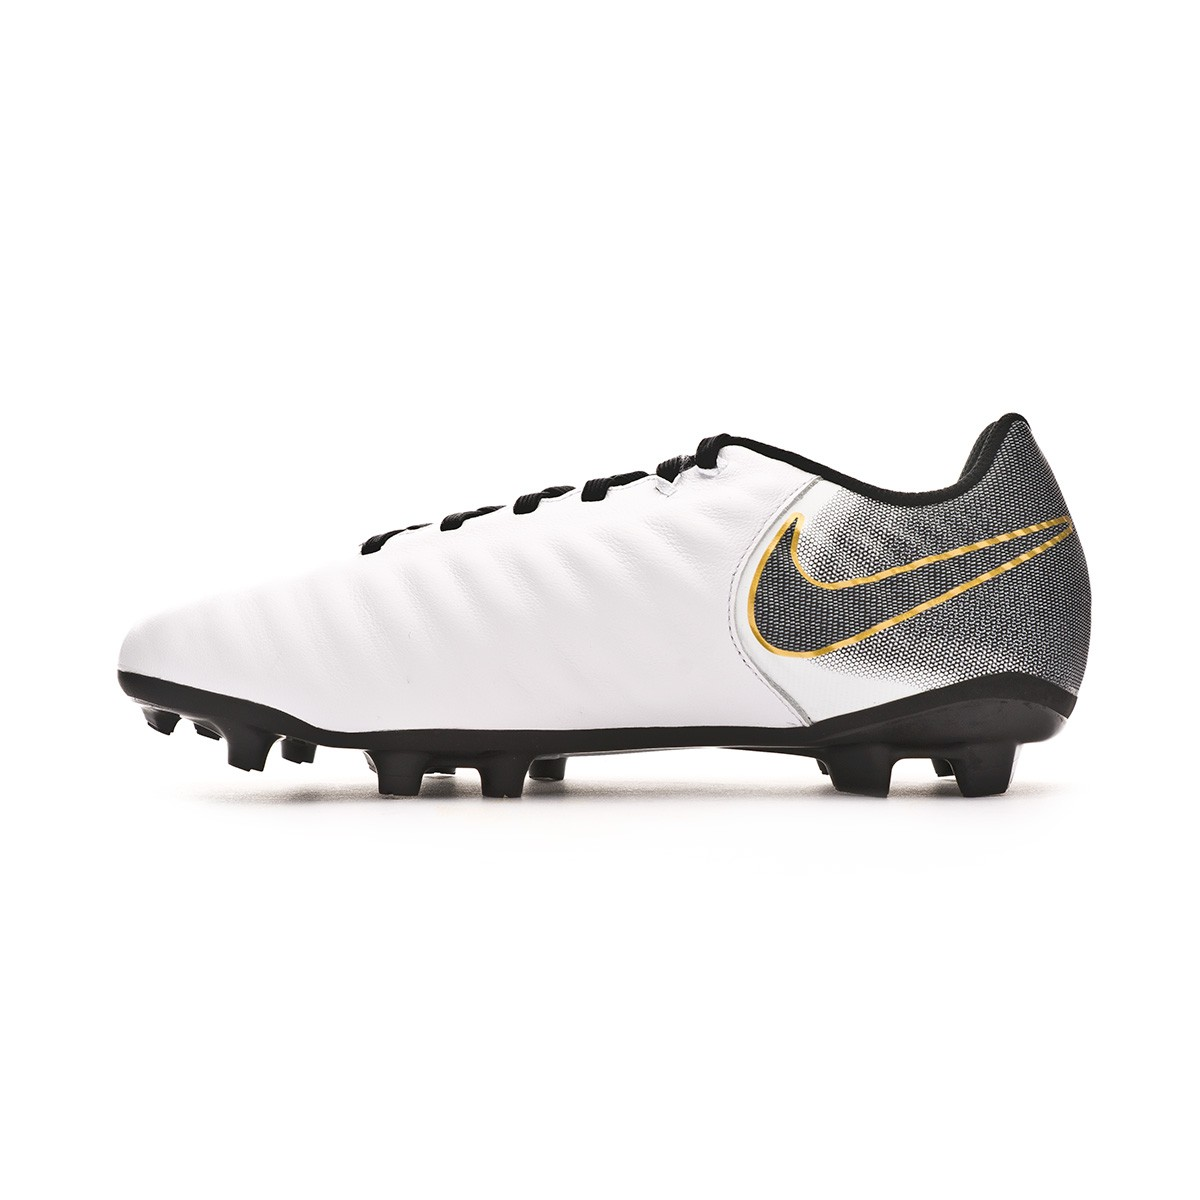 397c17c4e Football Boots Nike Kids Tiempo Legend VII Academy MG White-Black -  Football store Fútbol Emotion